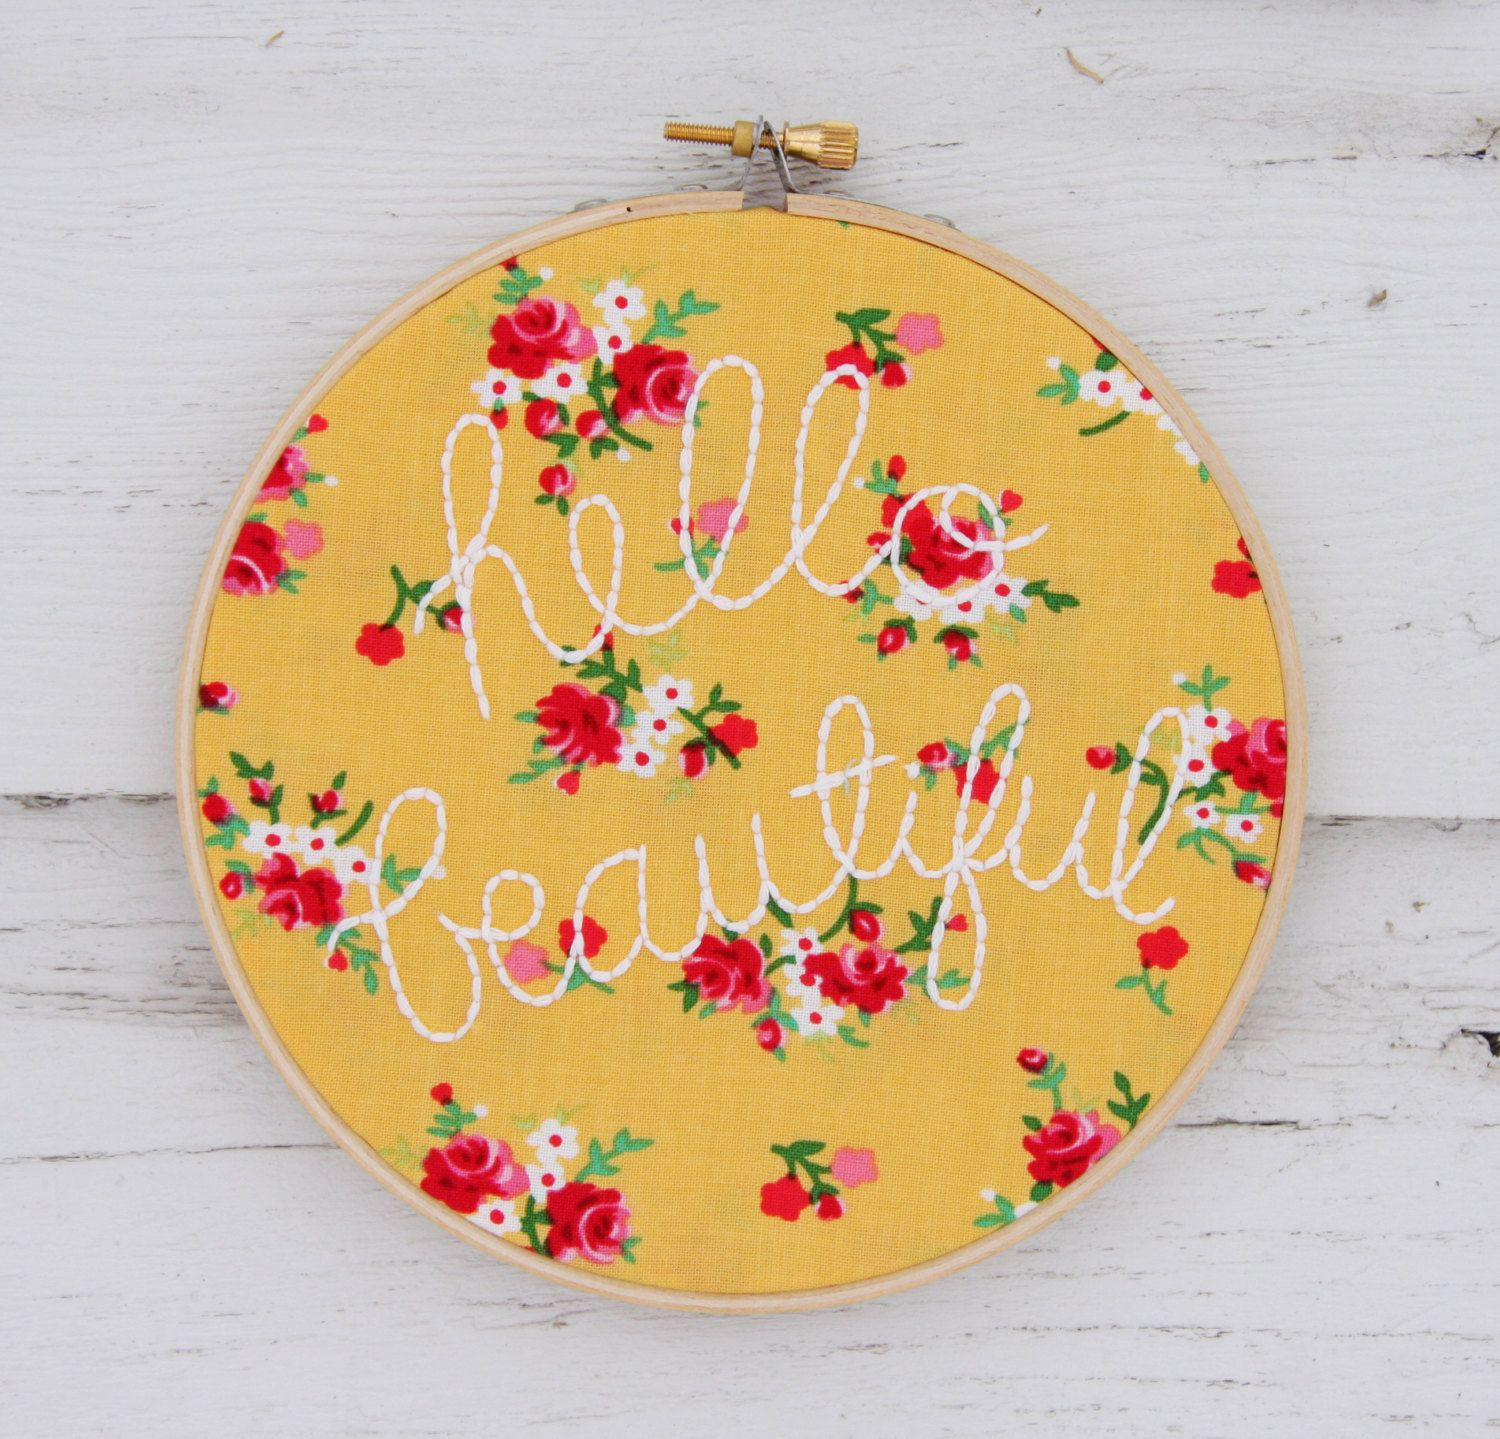 embroidery hoop wall art  sc 1 st  Pinterest & Whatu0027s All the Hoopla About | Embroidery Embroidery hoop art and Craft